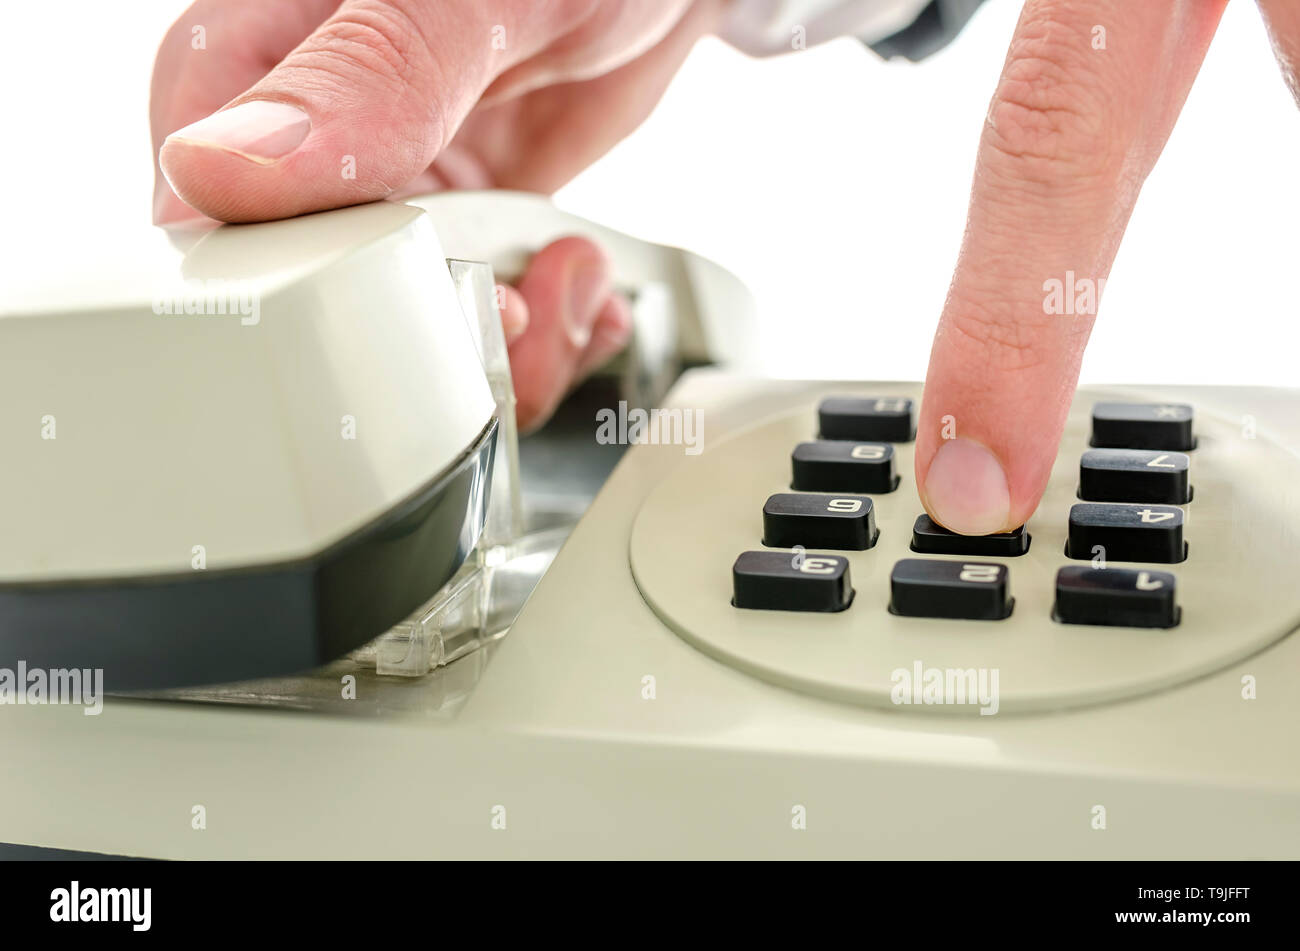 Detail of dialing a number on and old telephone. Isolated over white background. - Stock Image